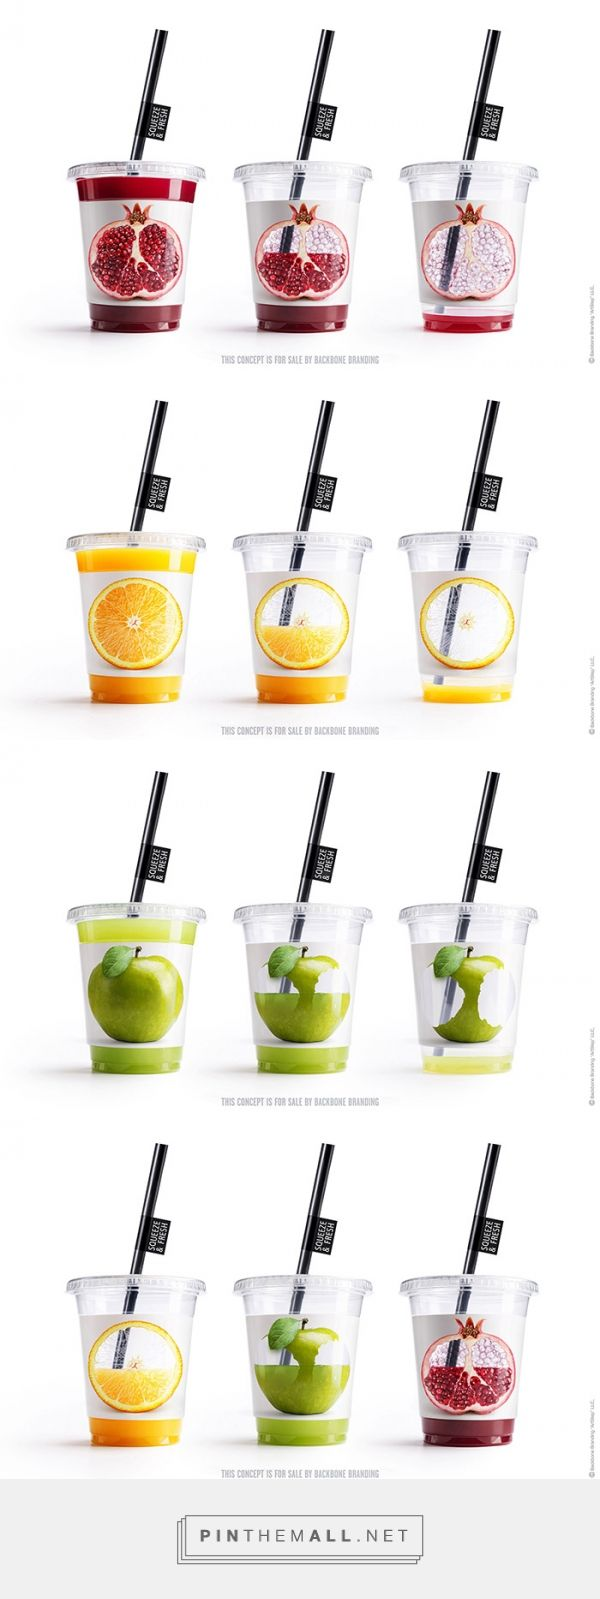 Squeeze & Fresh juices by Backbone Branding. Source: Daily Package Design Inspiration.